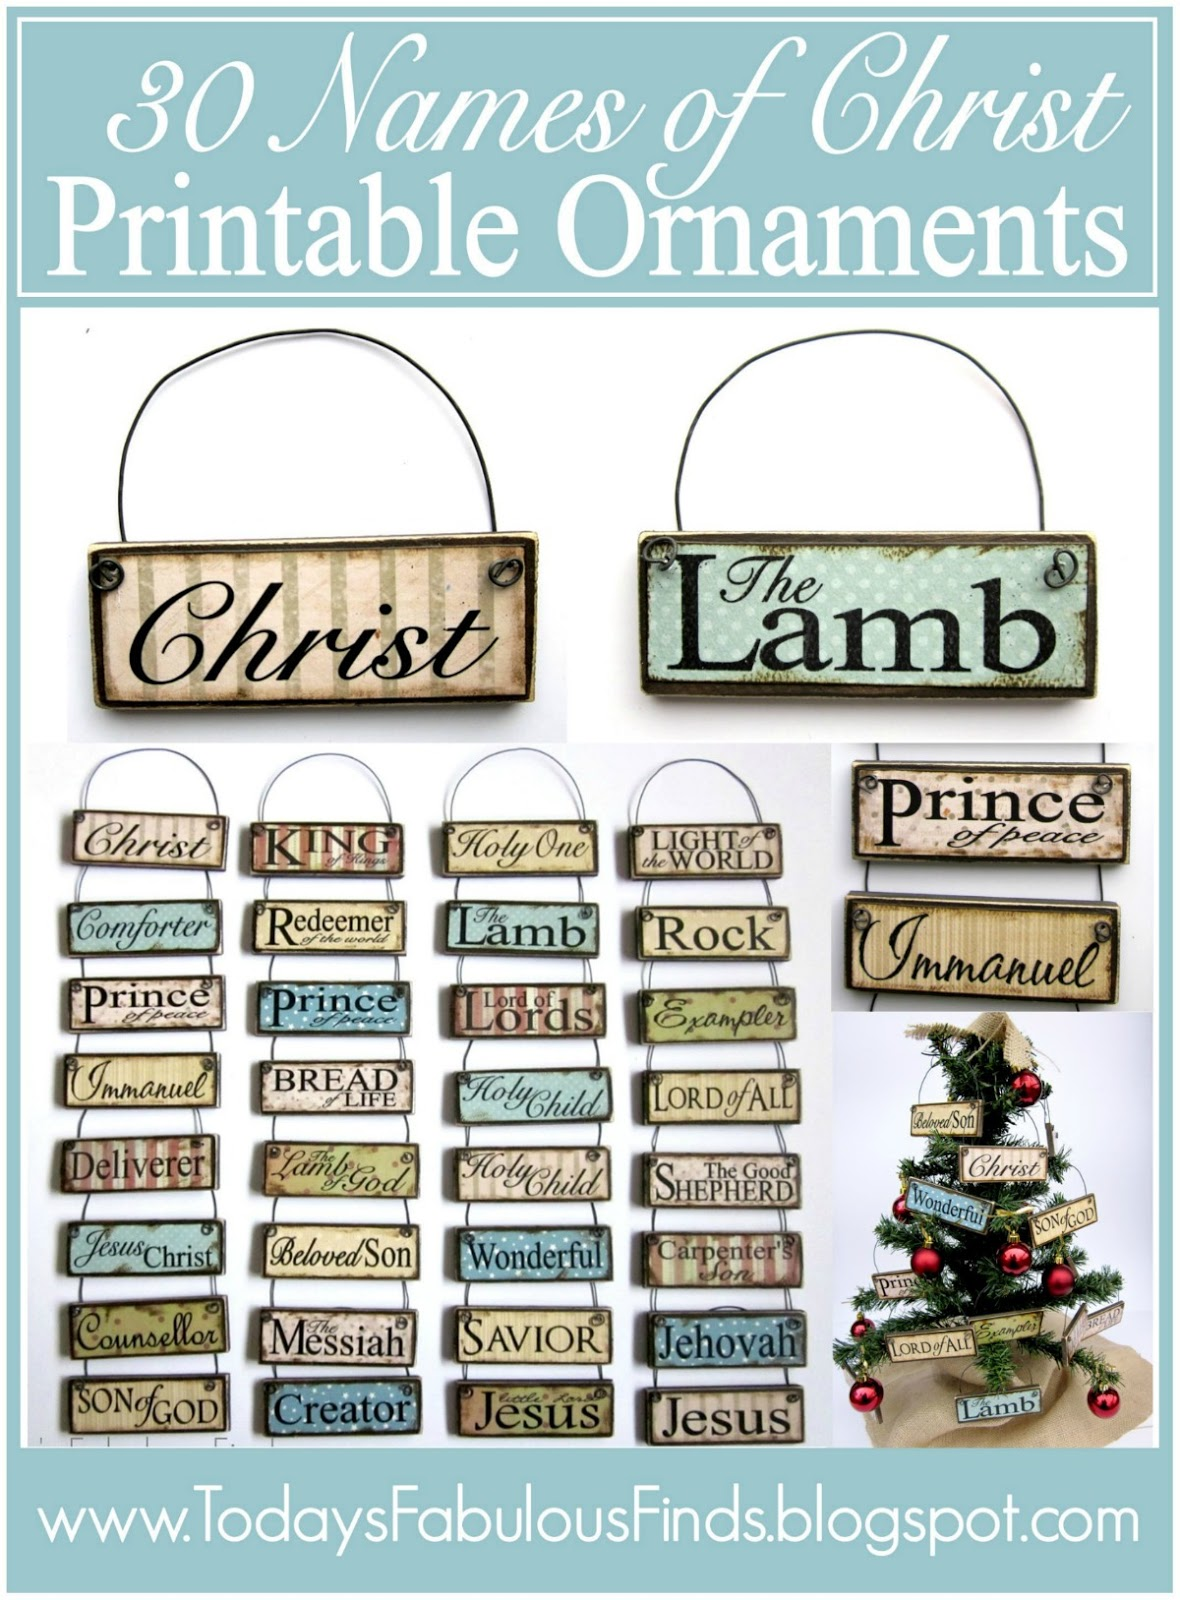 ... : DIY Printable Paint Stick Ornaments: Names and Attributes of Christ